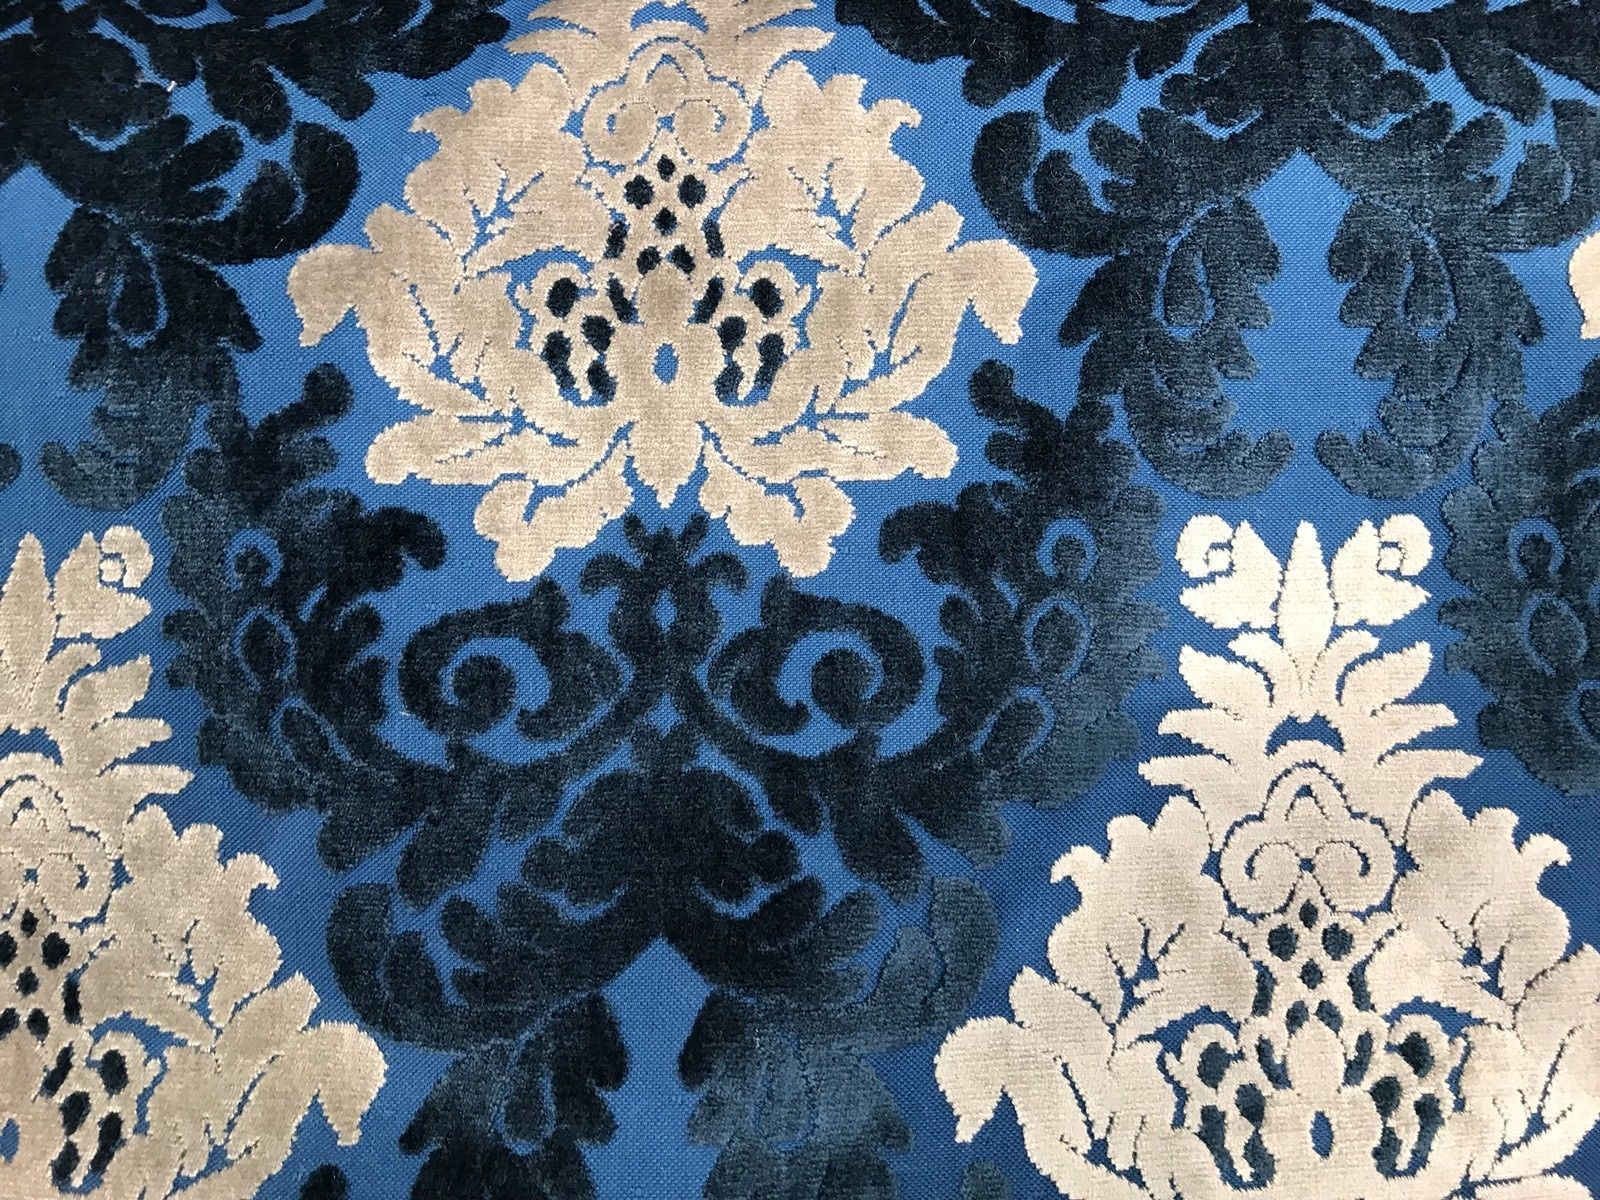 Embroidery Textured Damask Floral Pattern Blue Yellow Chenille Upholstery Fabric